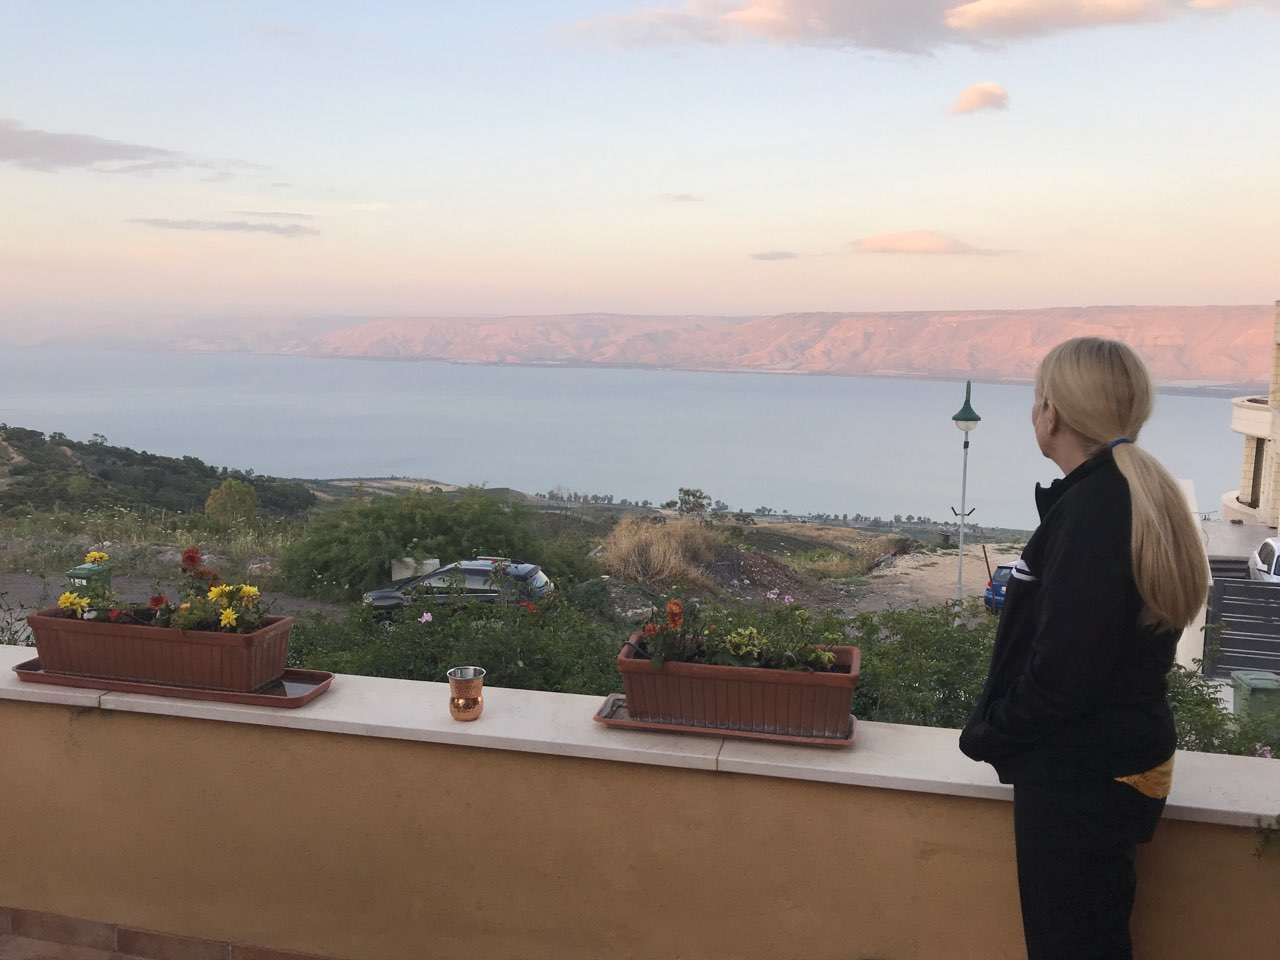 Sea of Galilee - Cindy's Porch